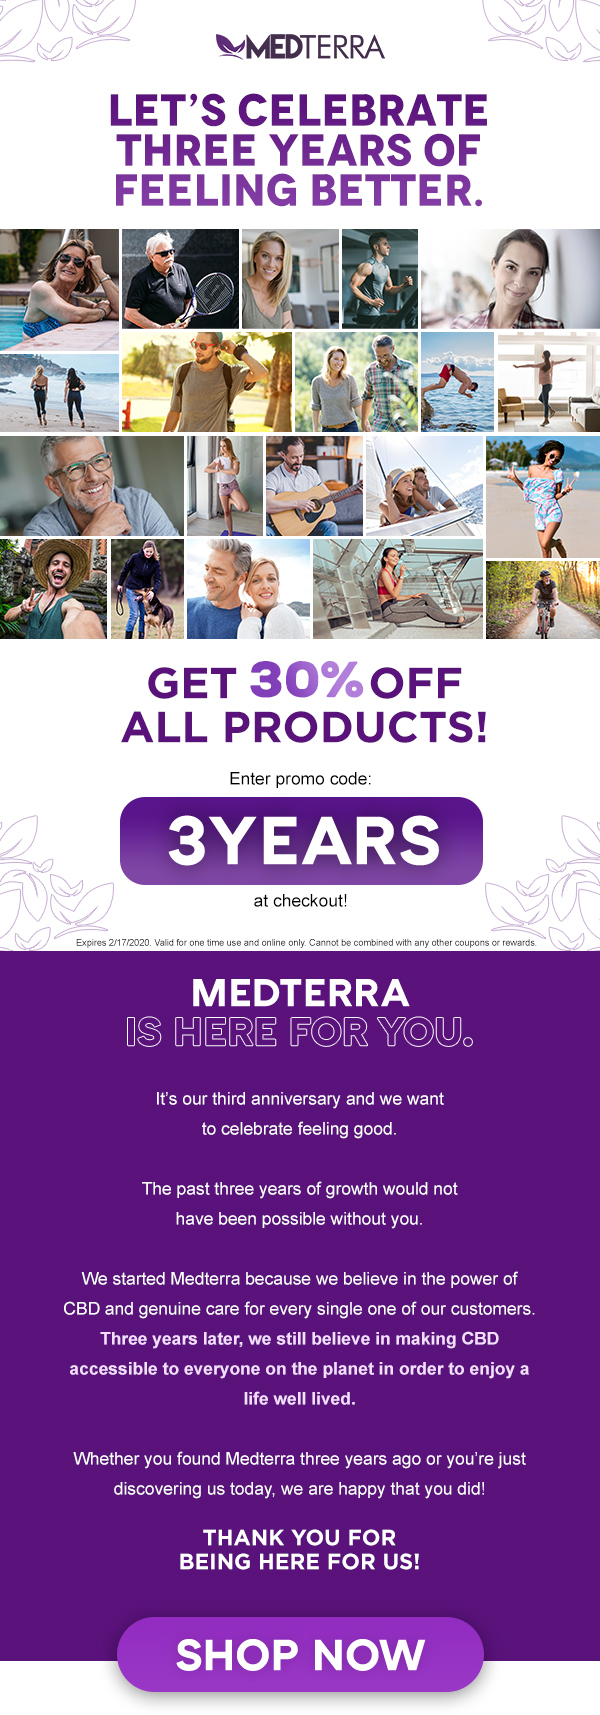 Get 30% off with the code 3YEARS